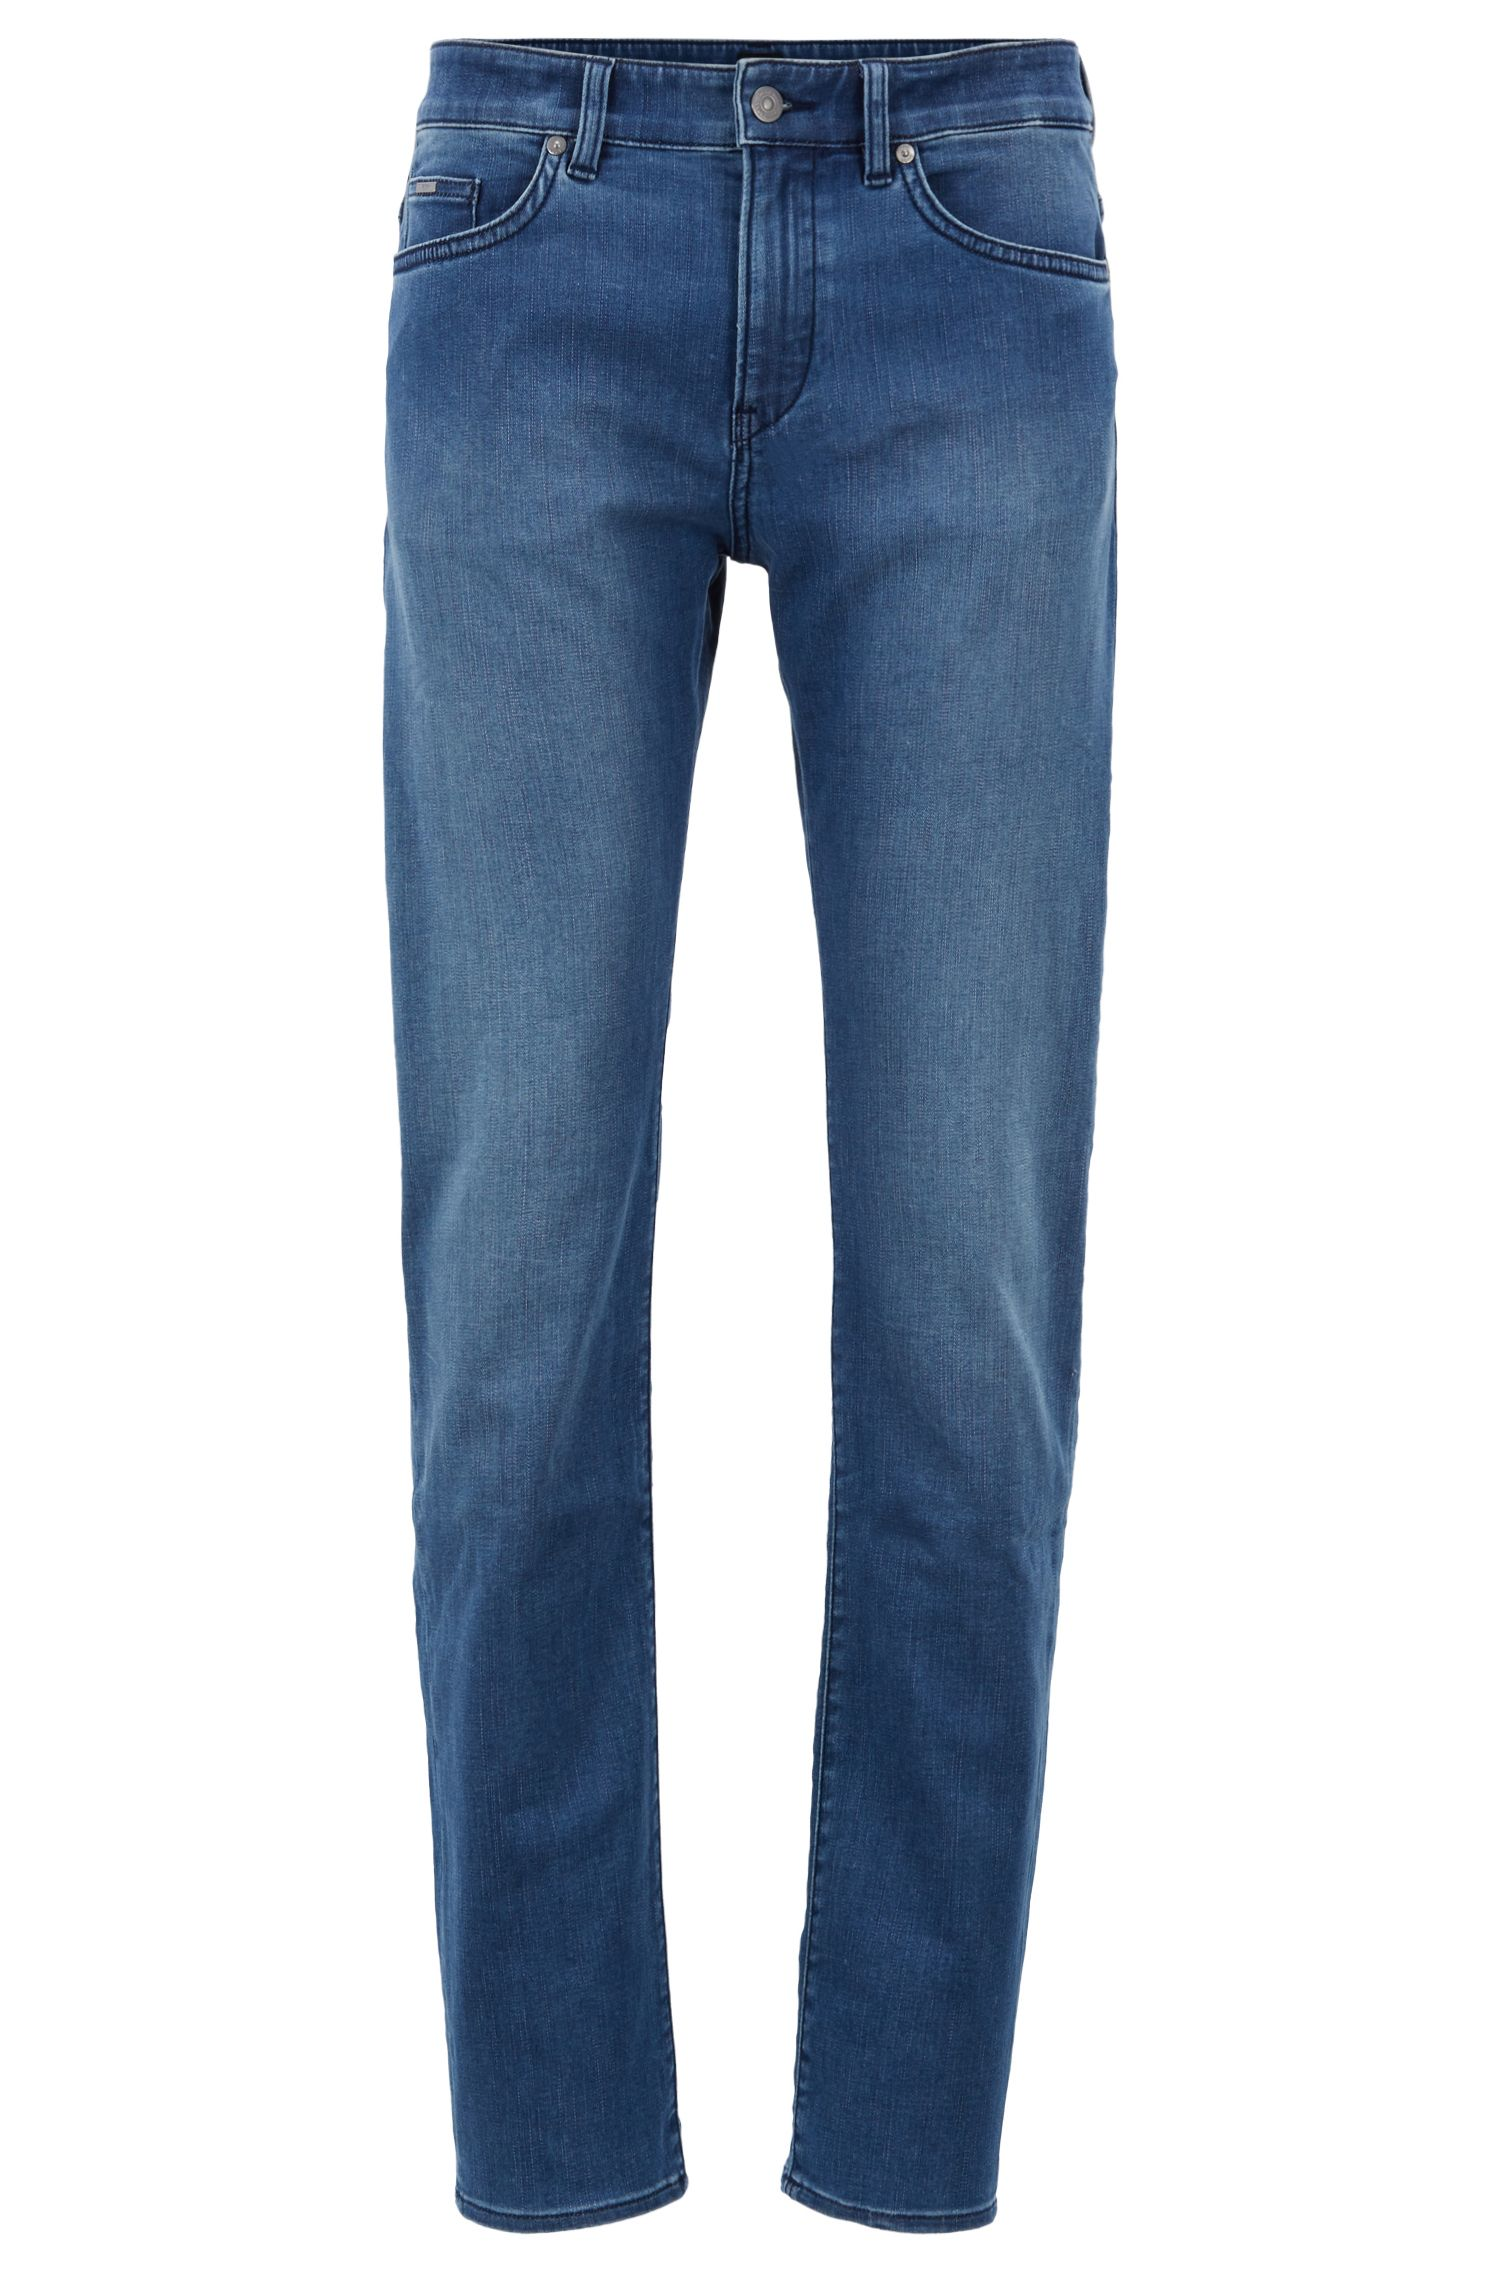 Jean Slim Fit en denim stretch ultra doux